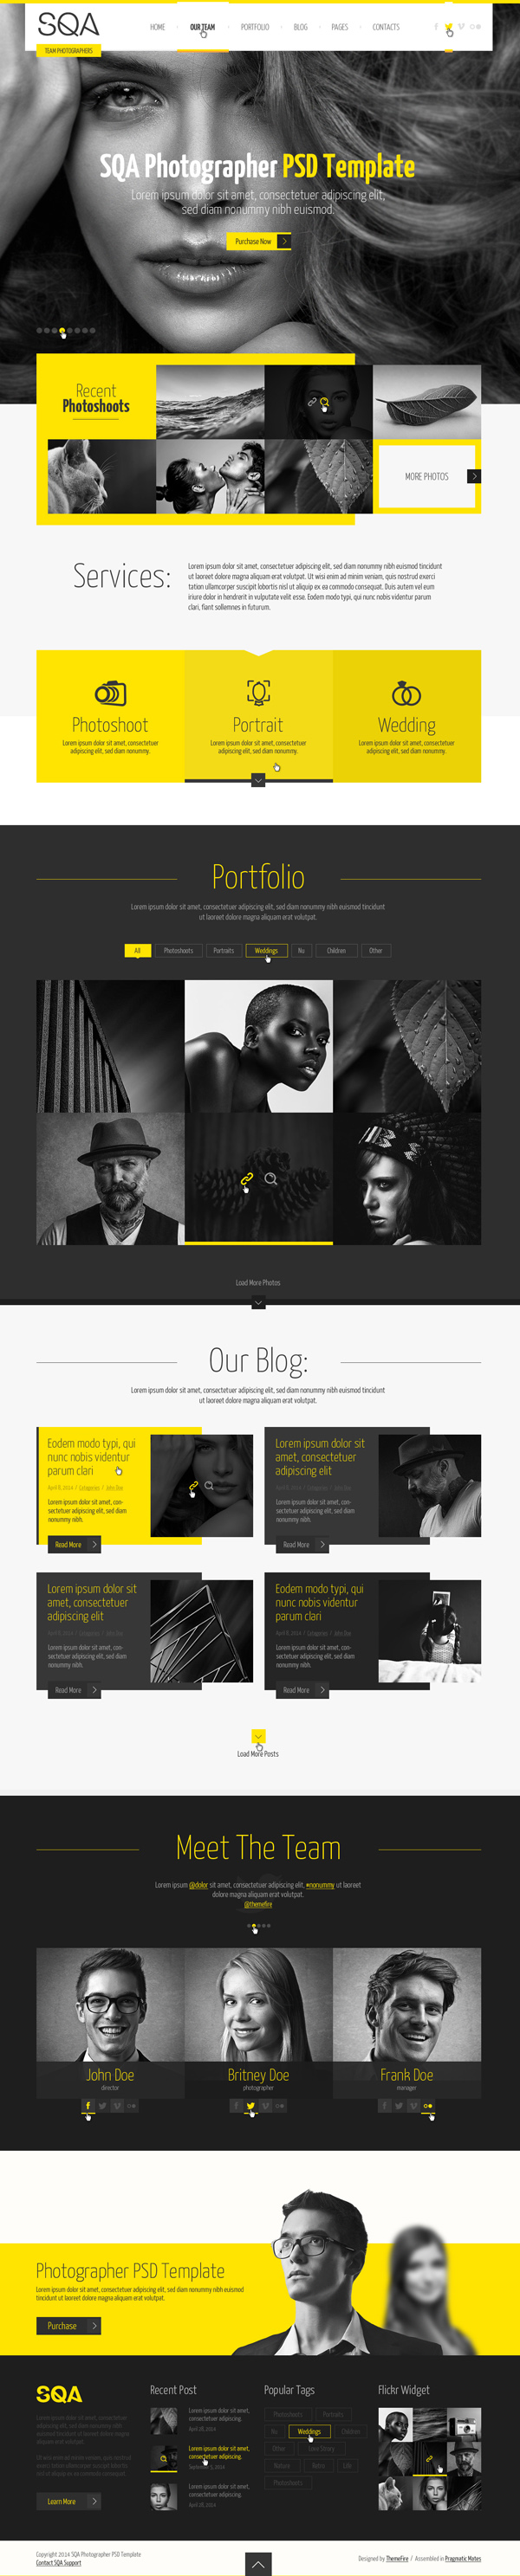 SQA - One Page PSD HTML5 Template